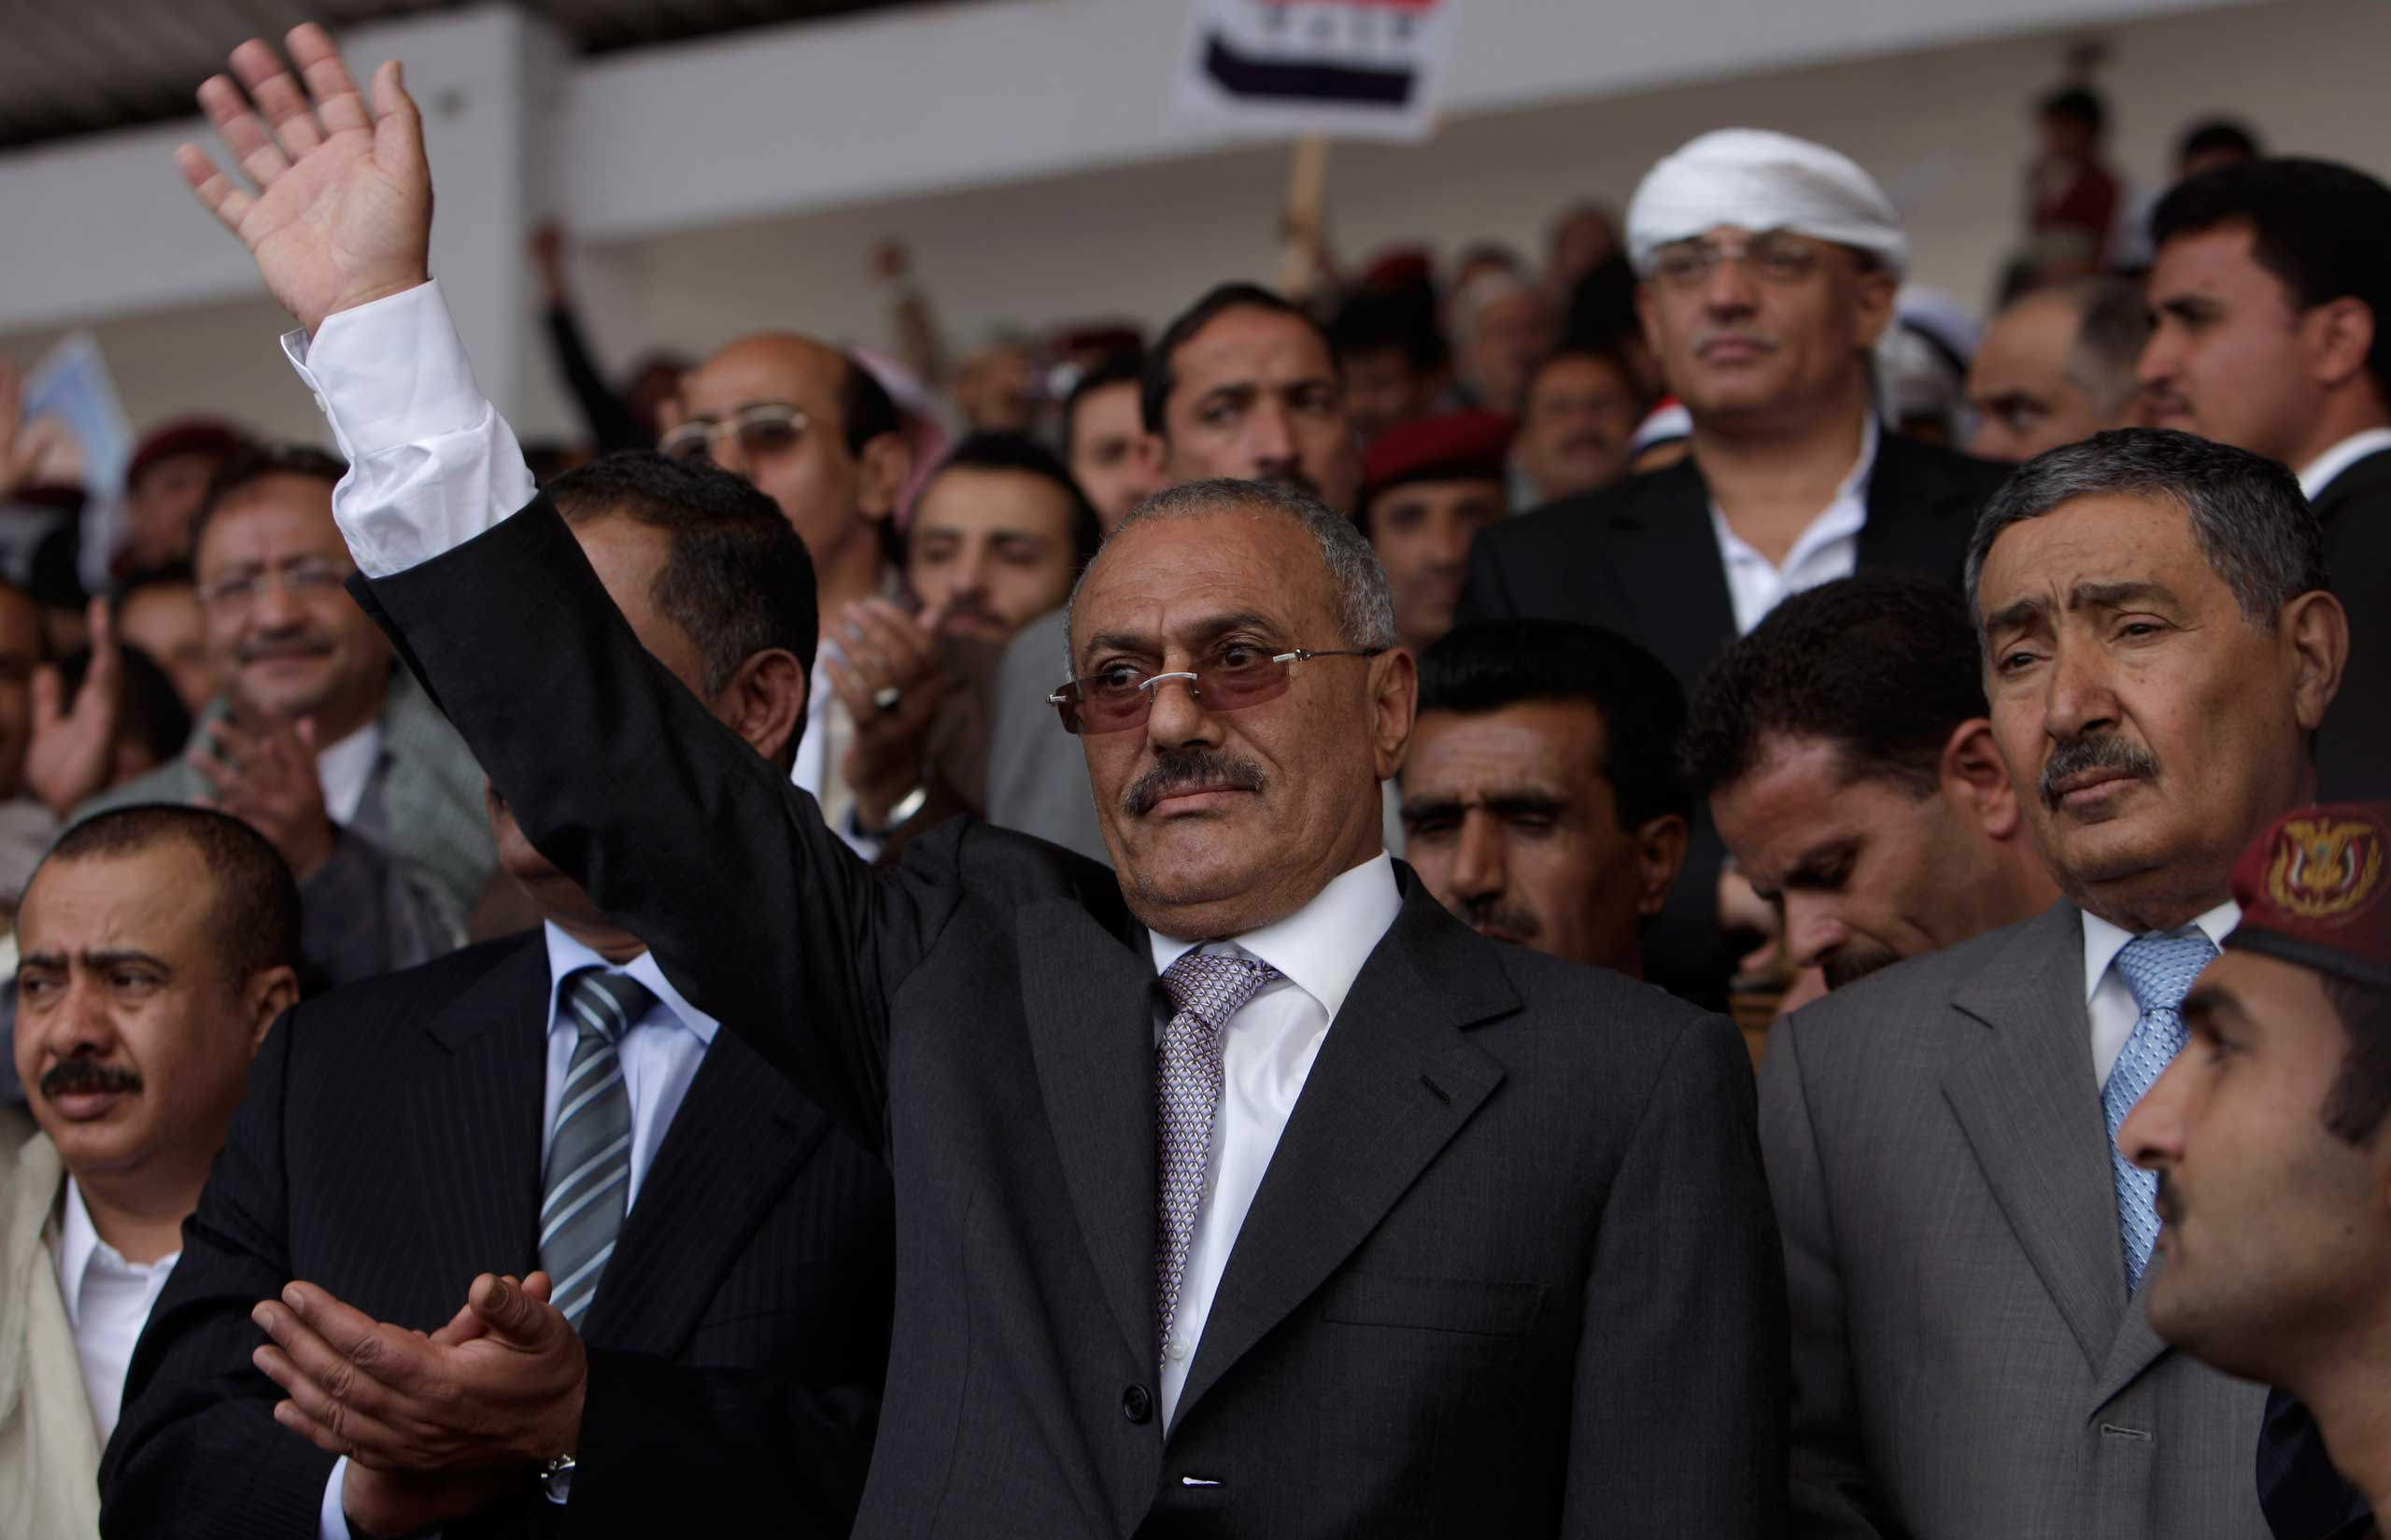 An explosion at the presidential palace on June 3, 2011, badly burned President Ali Abdullah Saleh, who left for Saudi Arabia for treatment but, to the dismay of opposition activists, returned to Sana'a in September